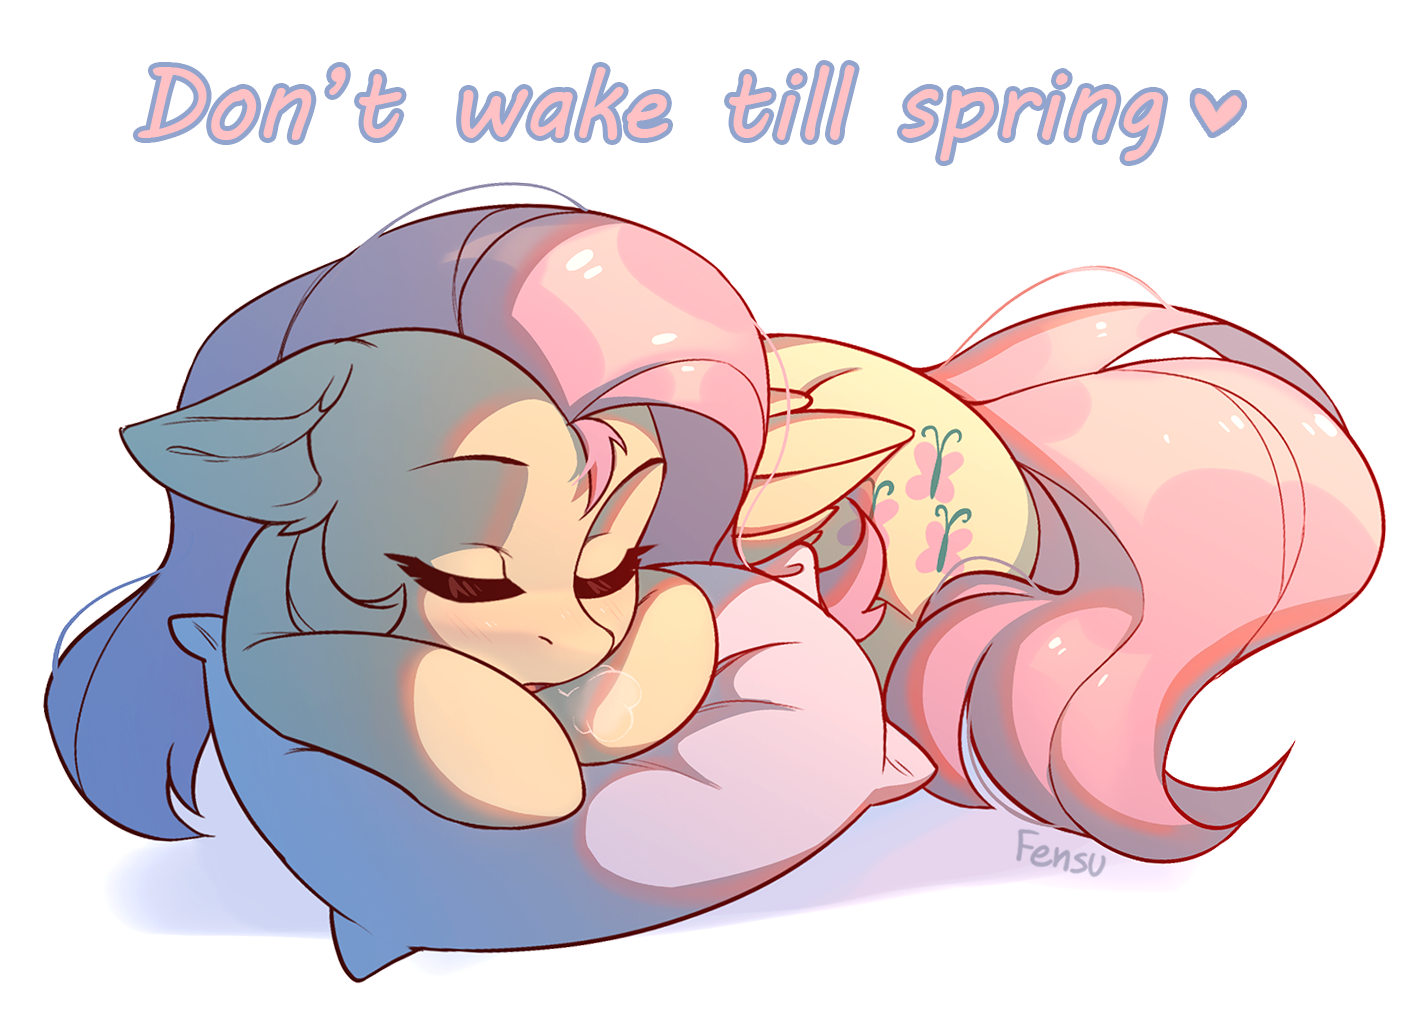 Sweet Dreams by Fensu-San